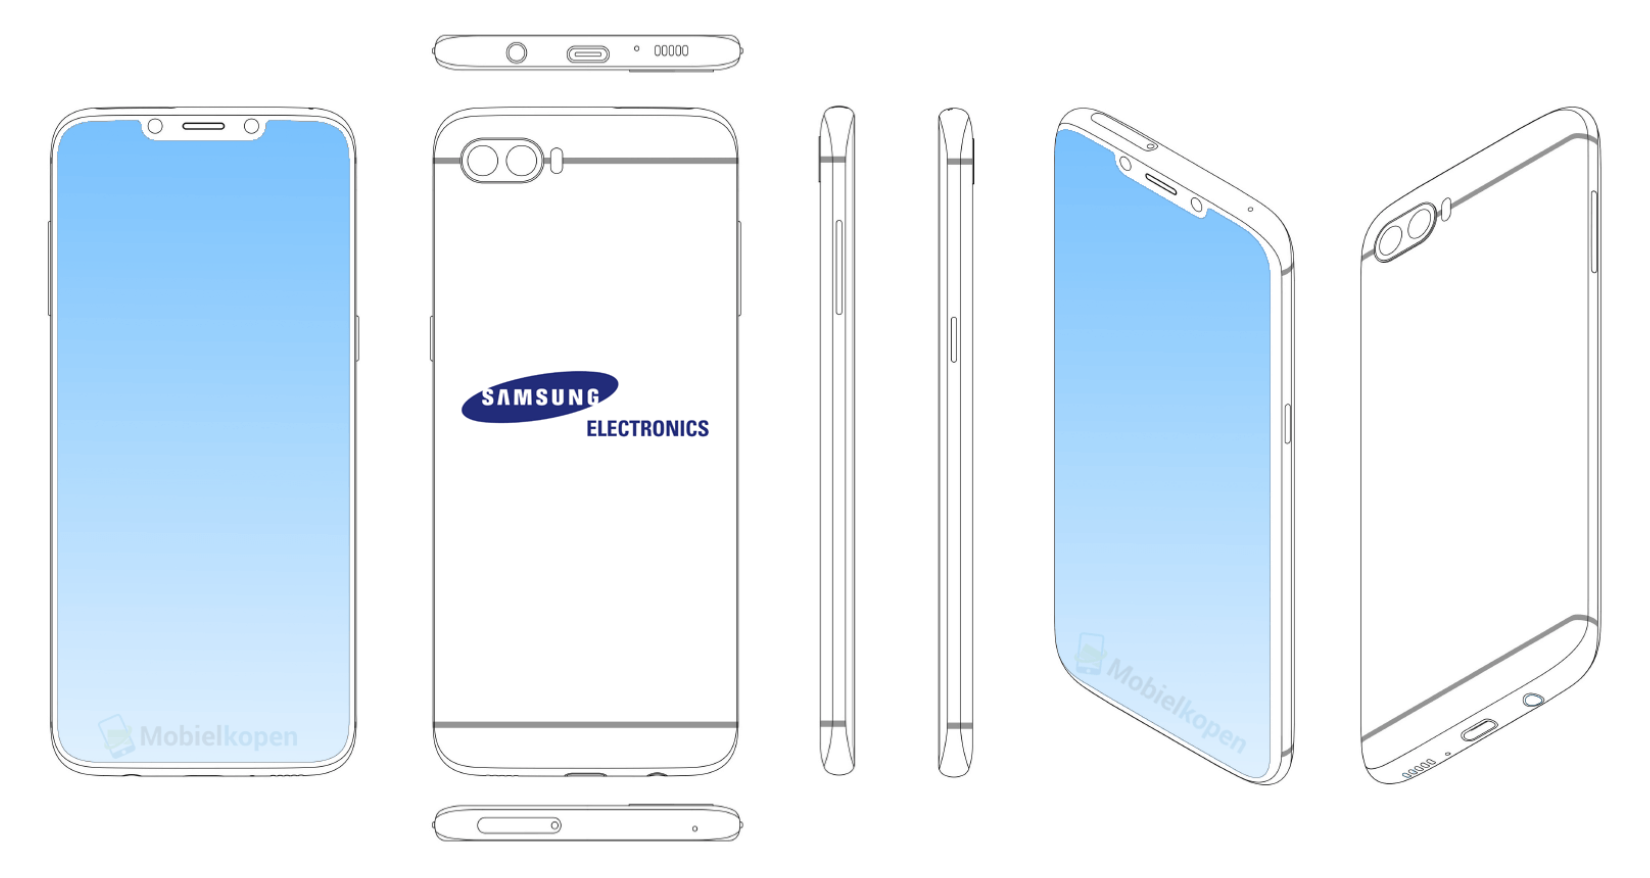 Samsung Patents New Designs For Notch and Full Screen Display